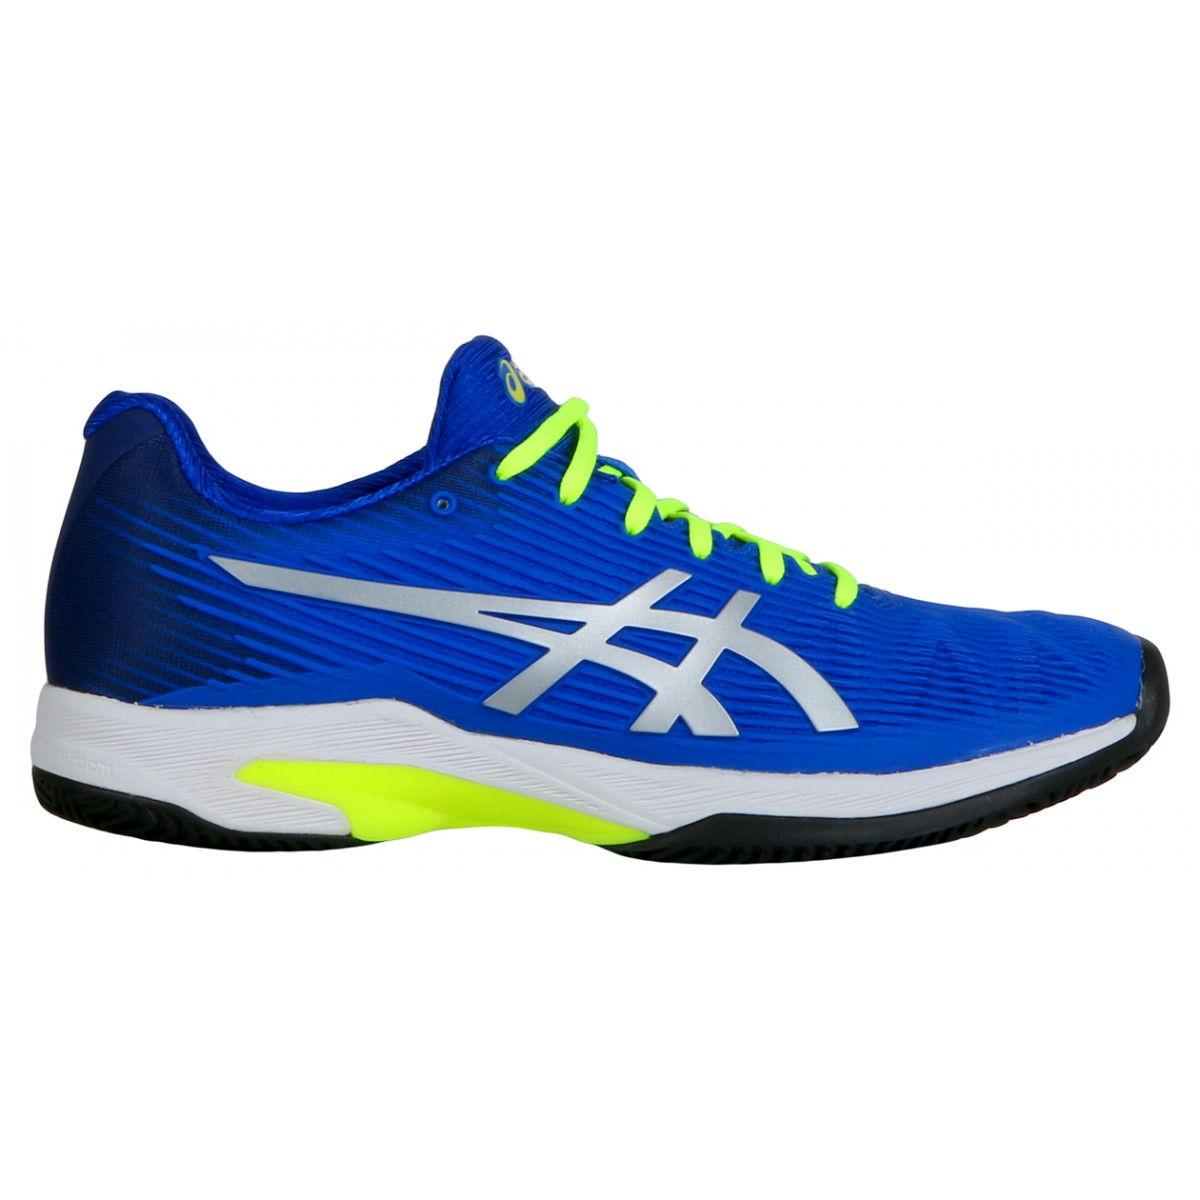 CHAUSSURES ASICS SPEED FF TERRE BATTUE